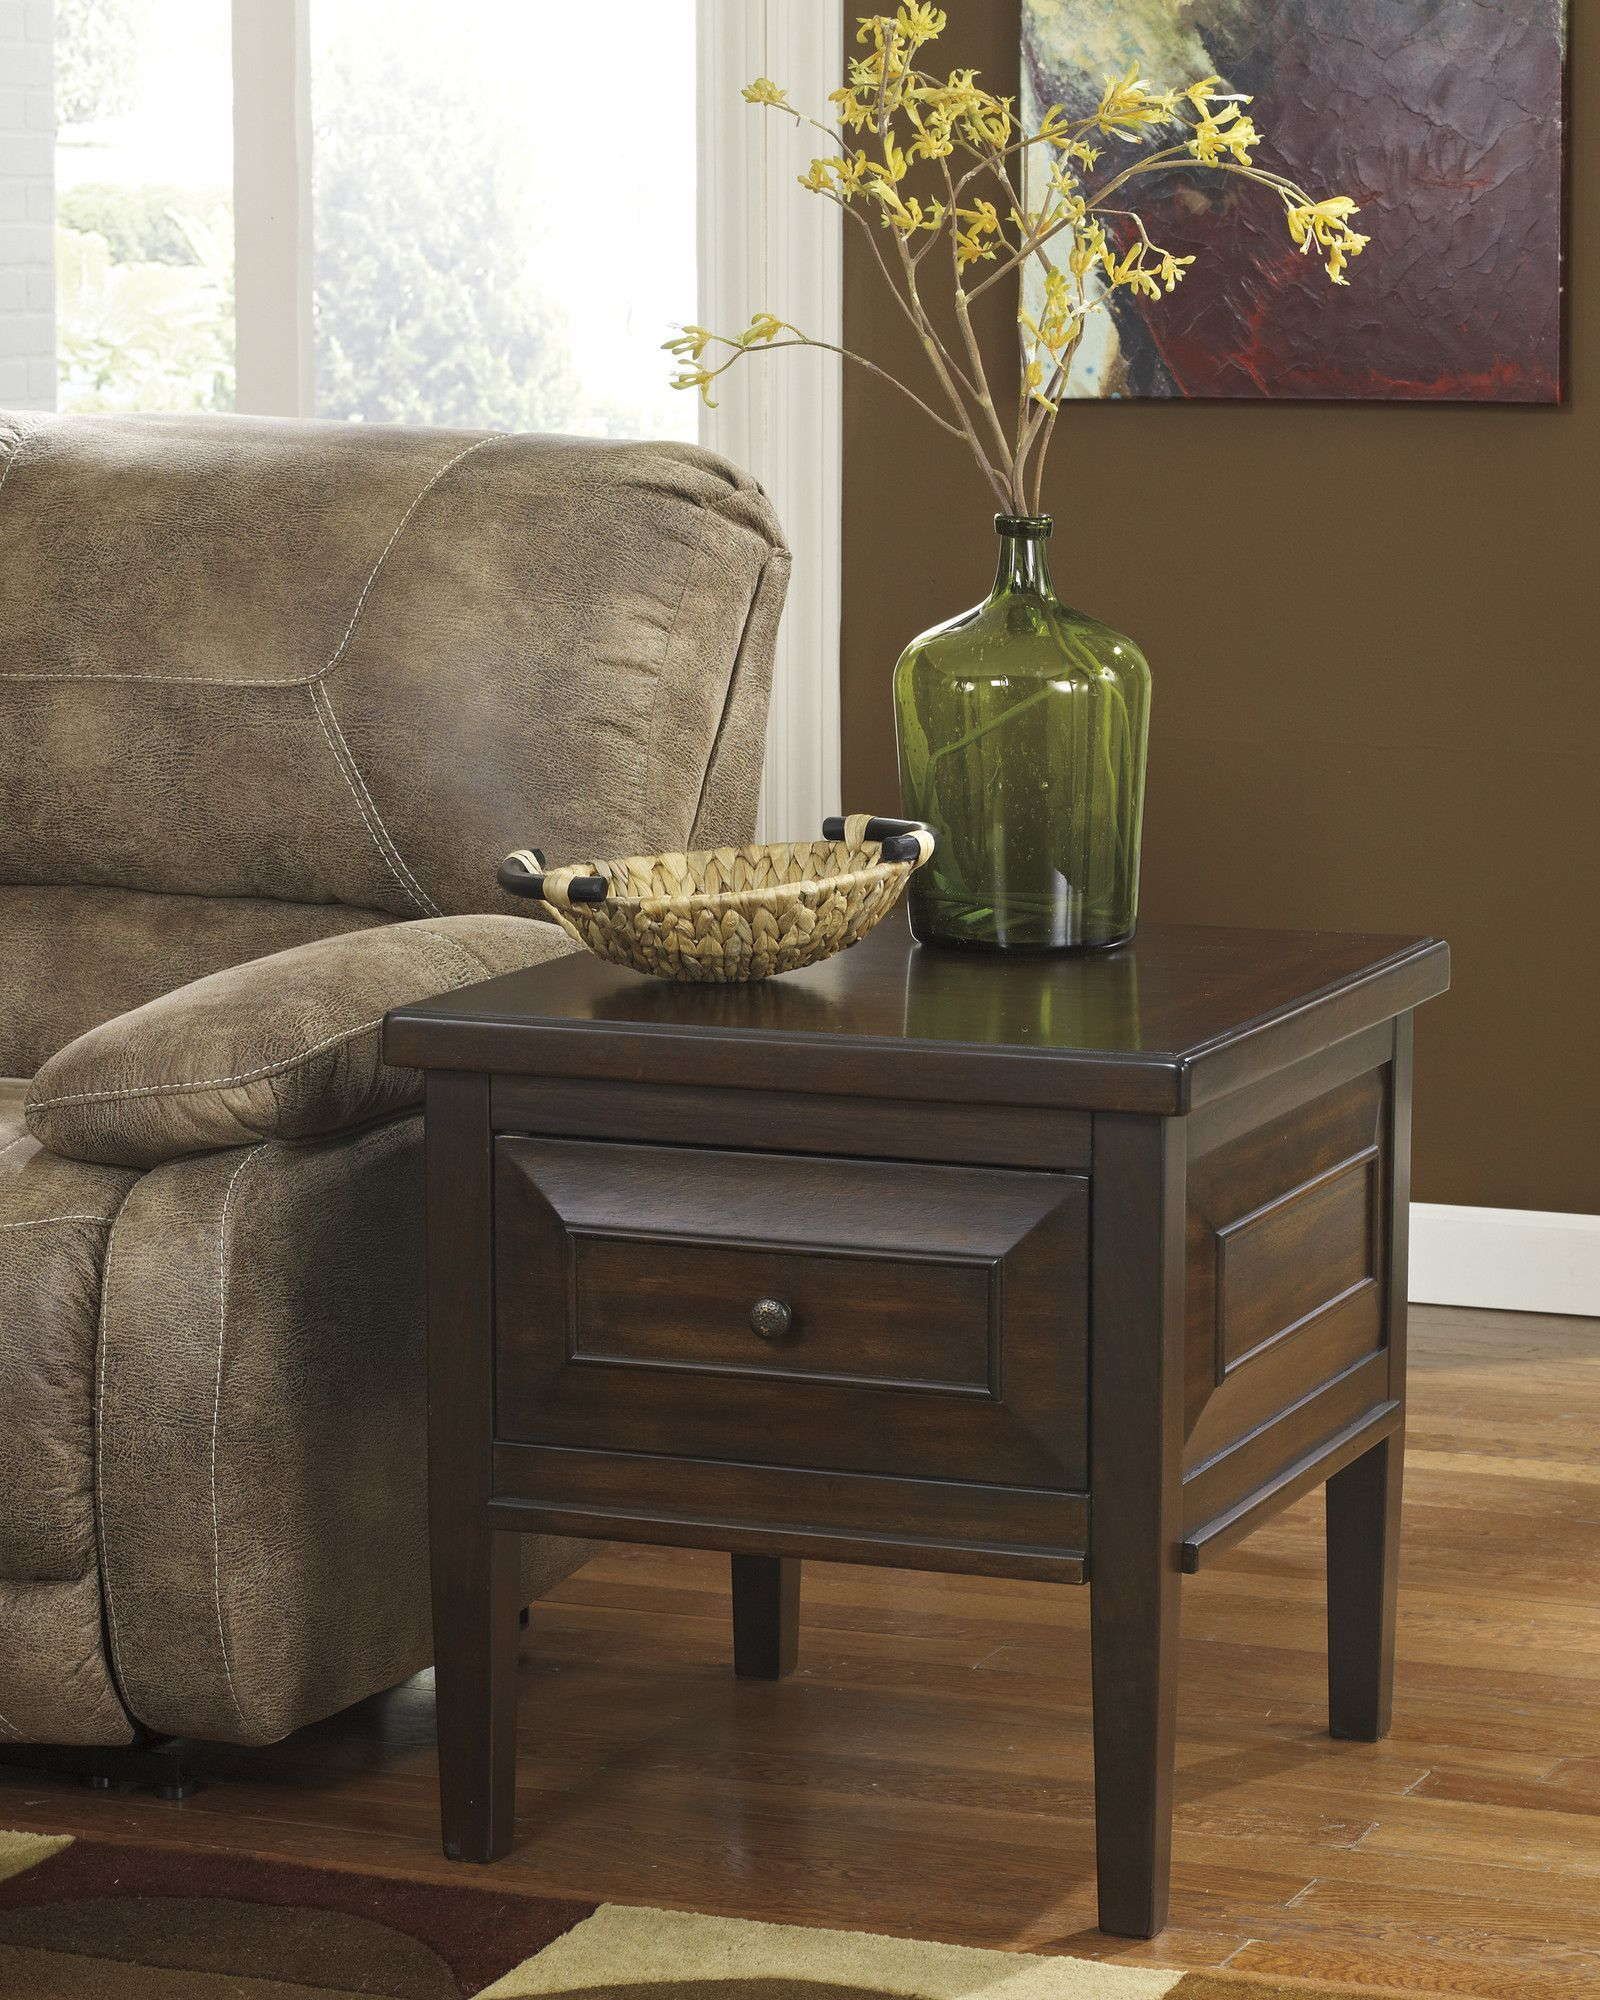 Hindell Park Coffee Table.Hindell Park End Table Interior Decorating Course Muebles Madera